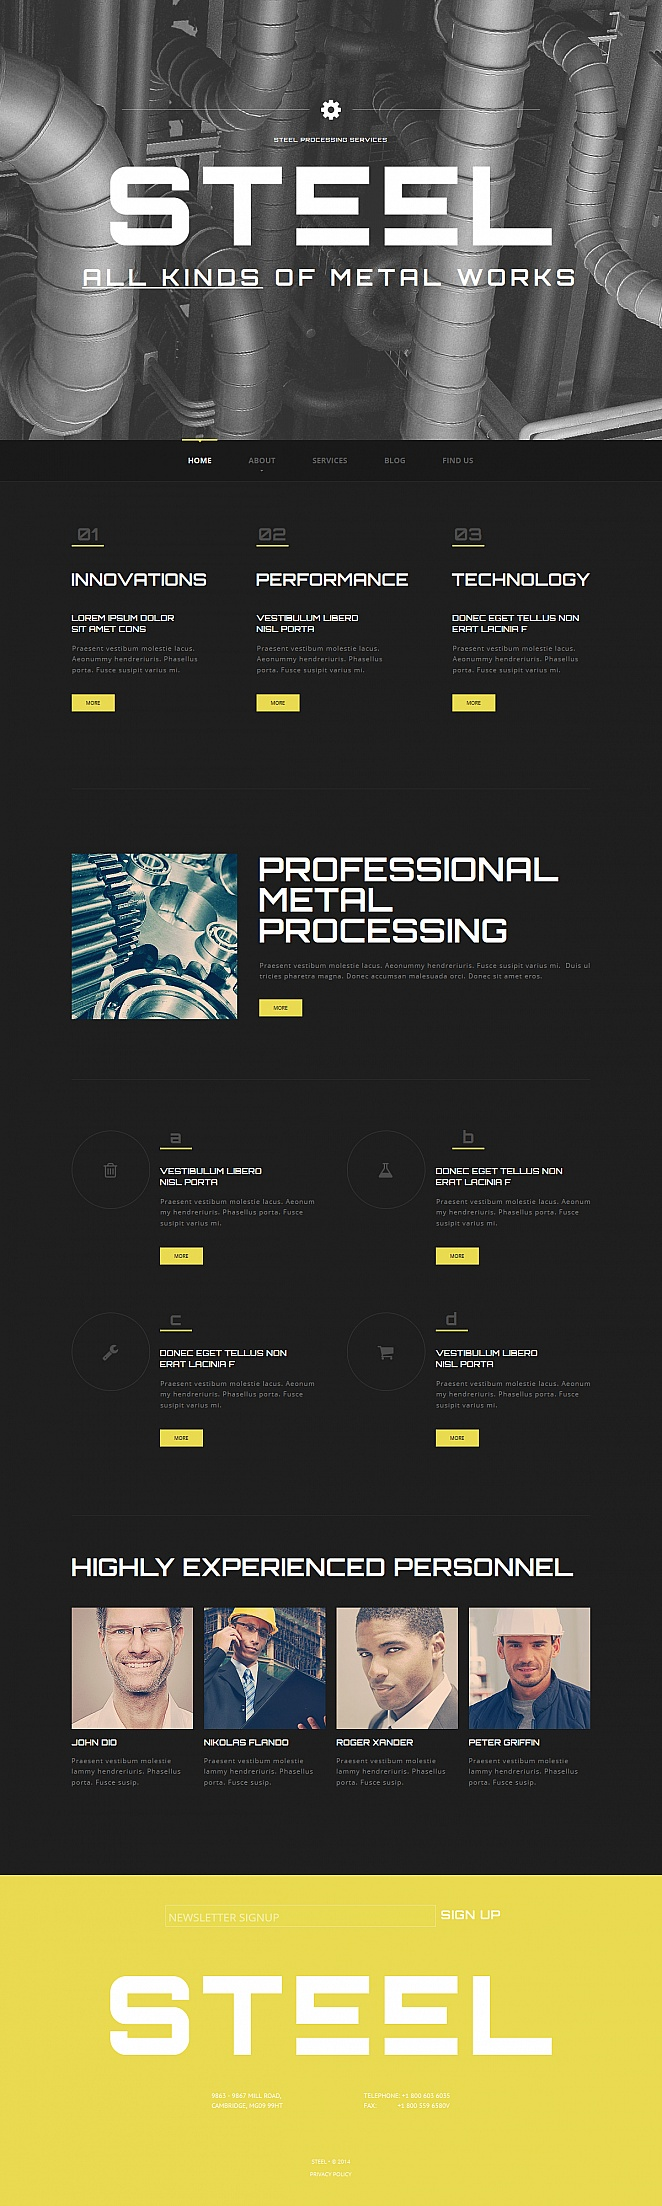 Black Metal Working Website Template with Large Yellow Footer - image